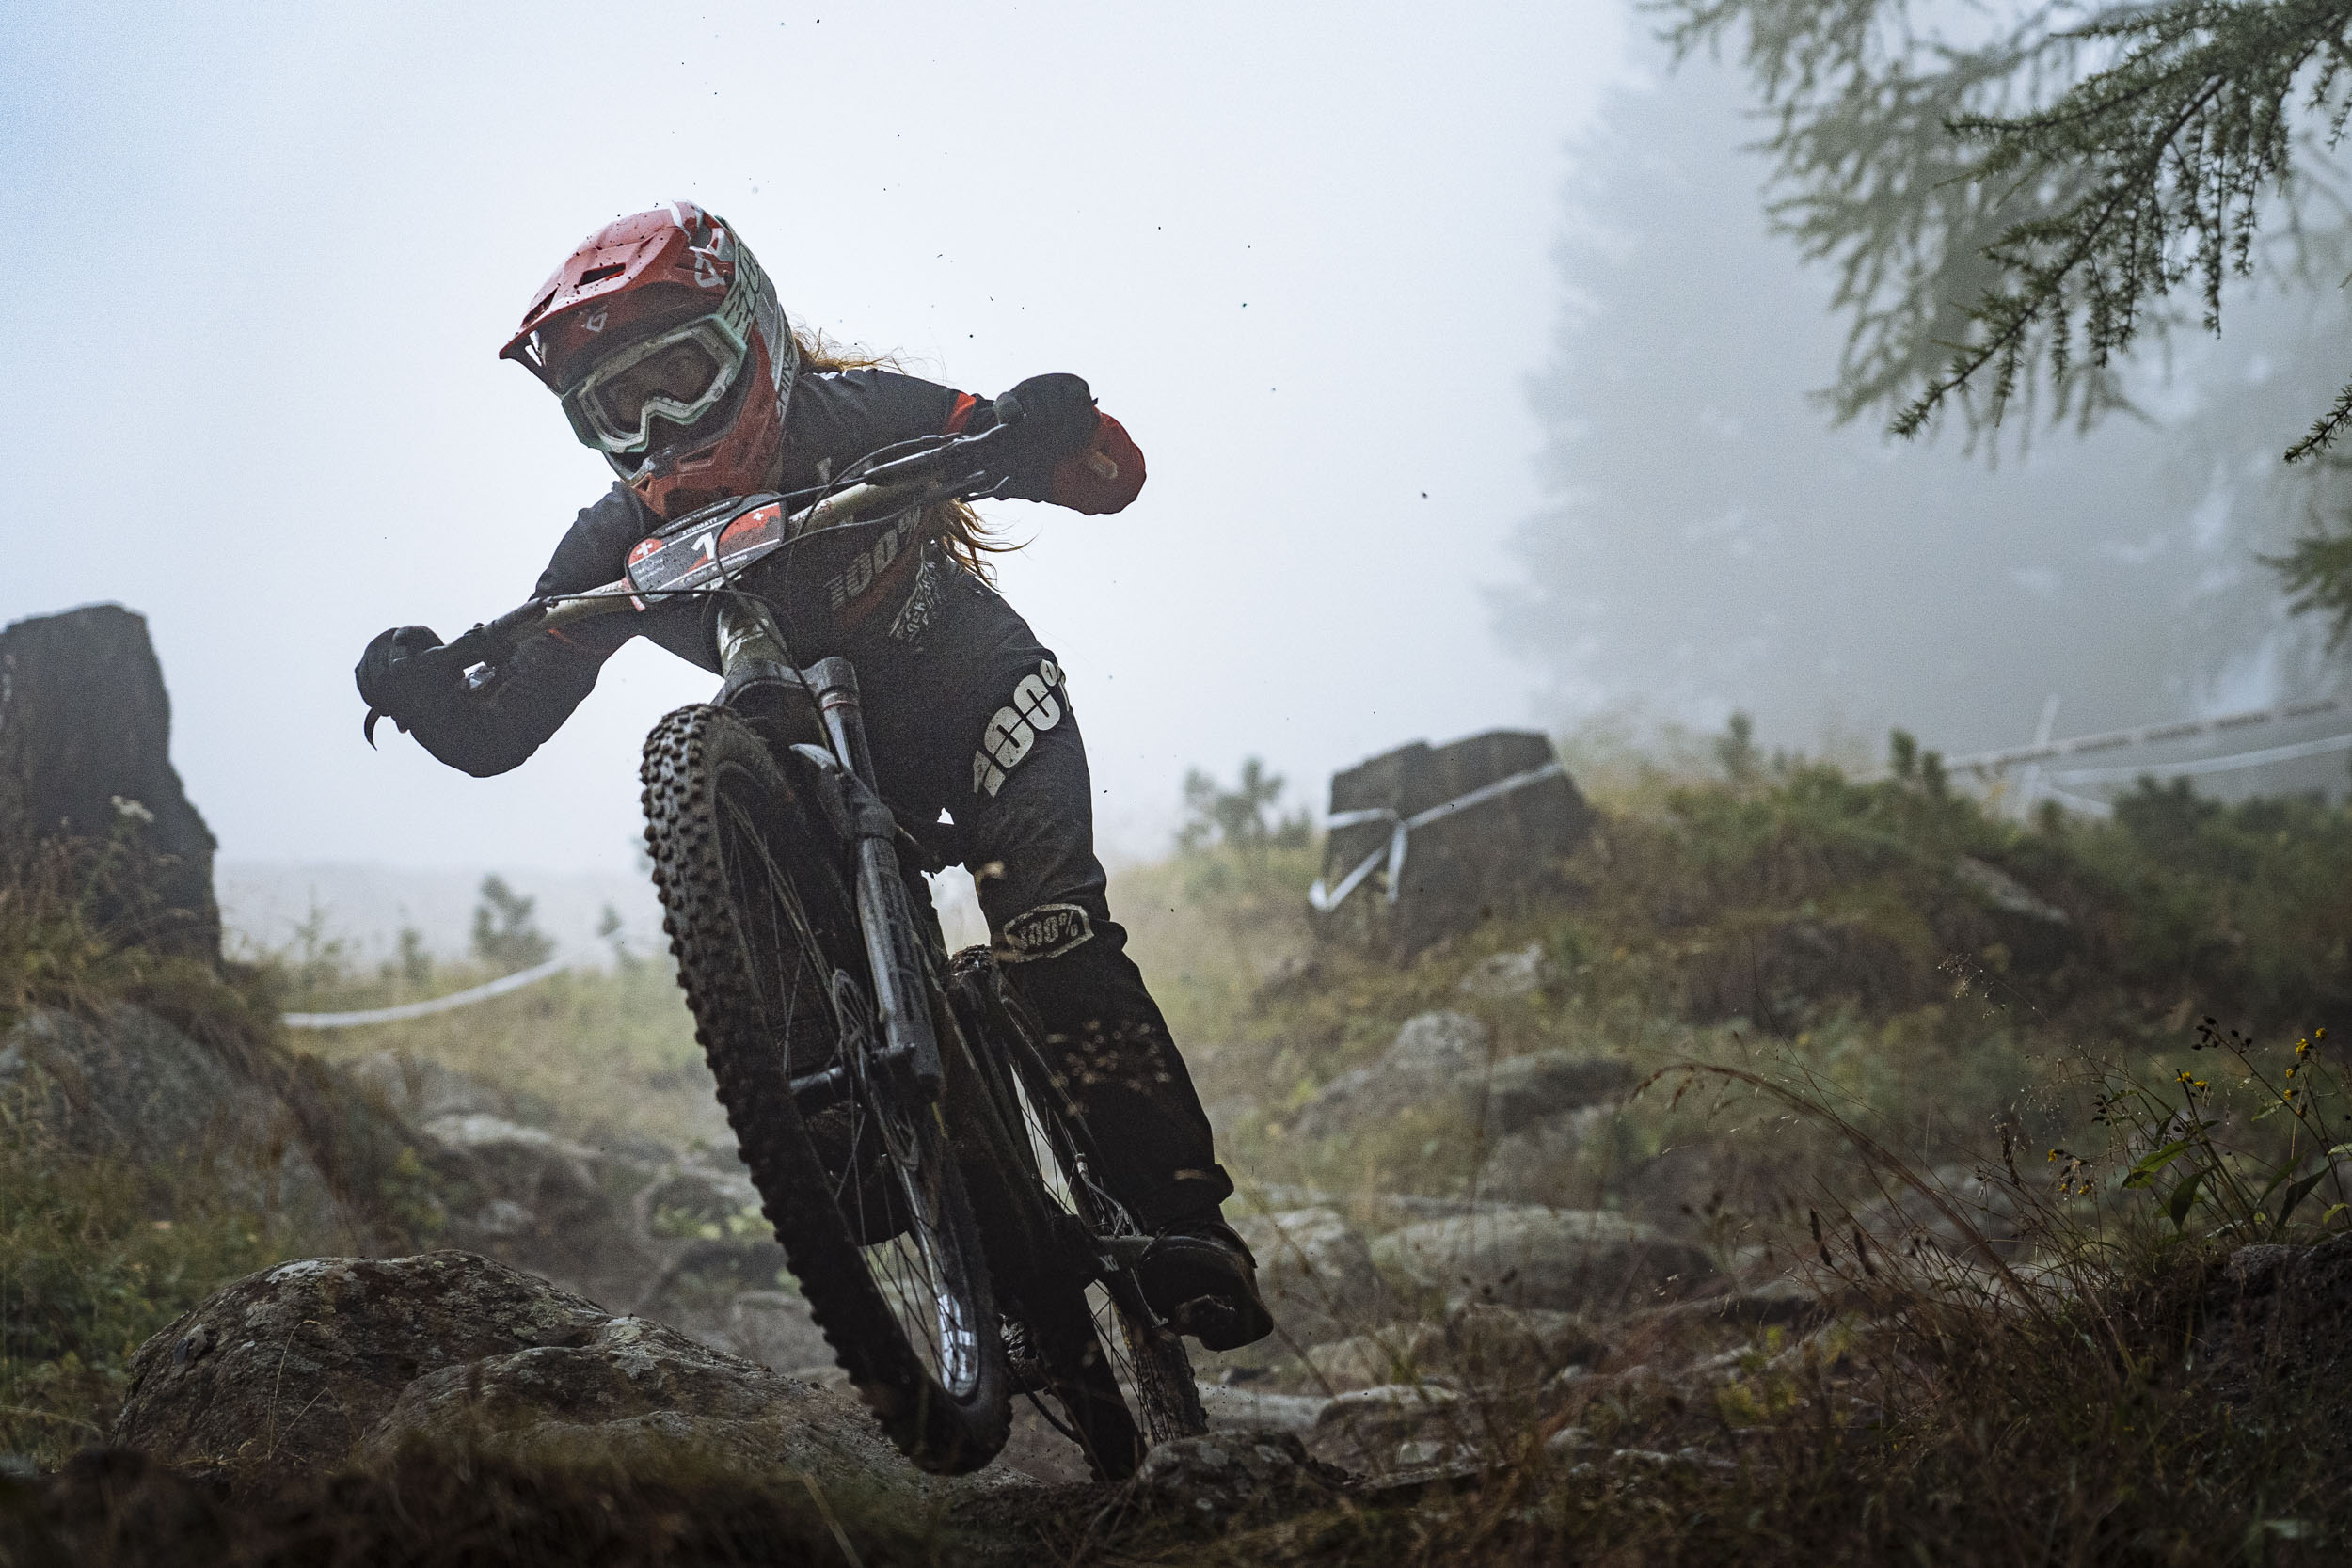 Isabeau Courdurier put down another dominating performance for her new race team.